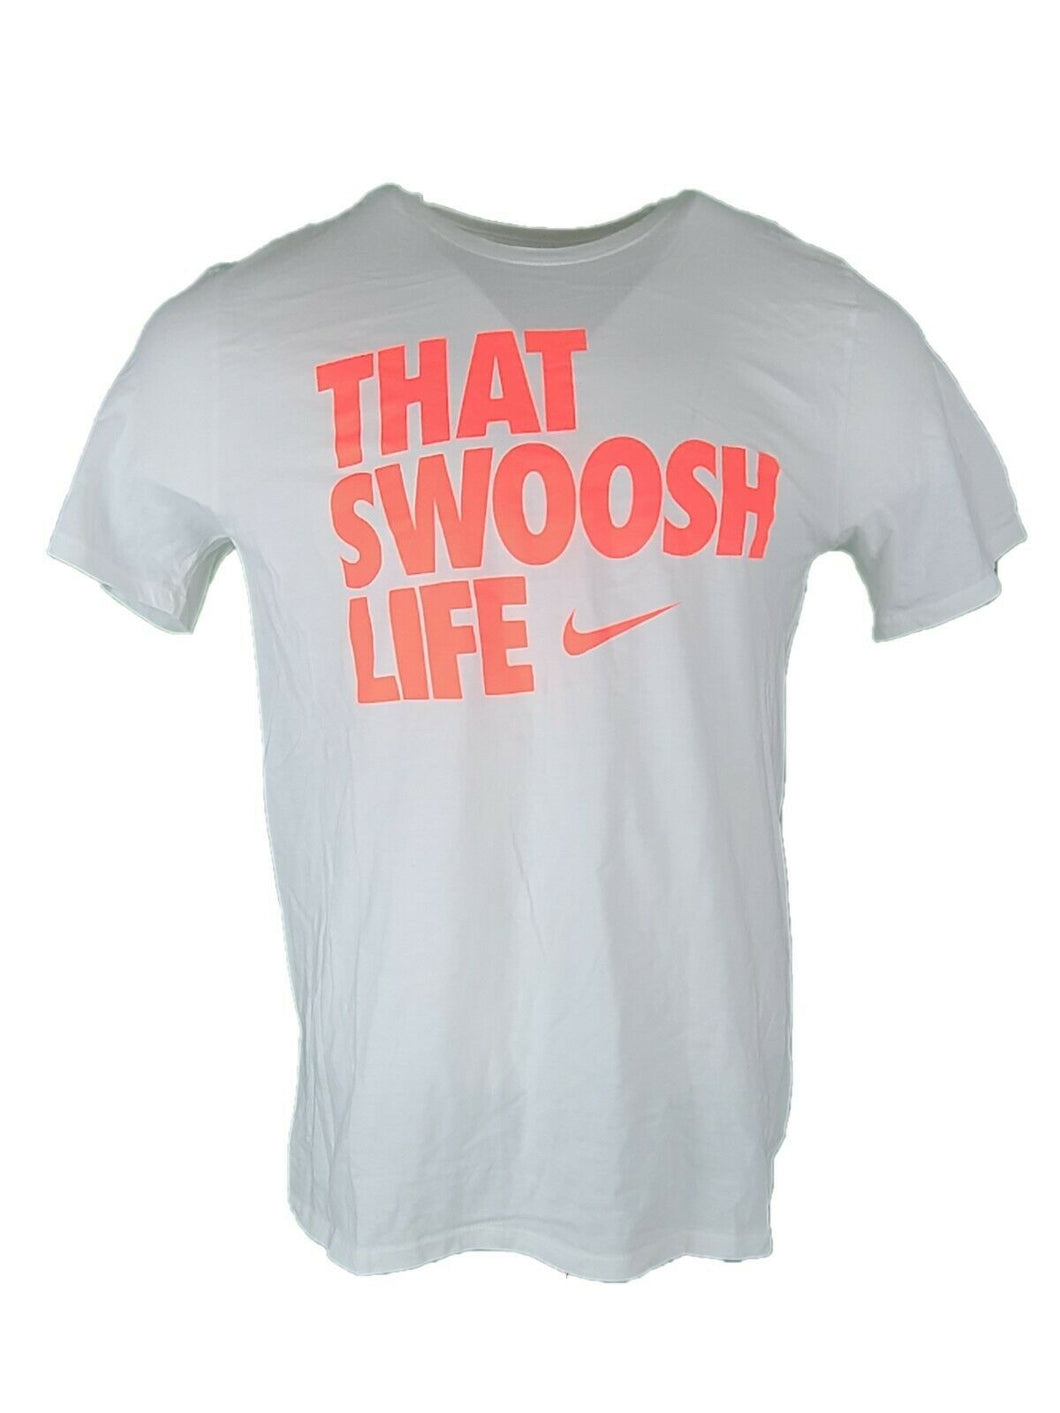 New NIKE That Swoosh Life T-Shirt Athletic Cut  Large Gym Workout Running